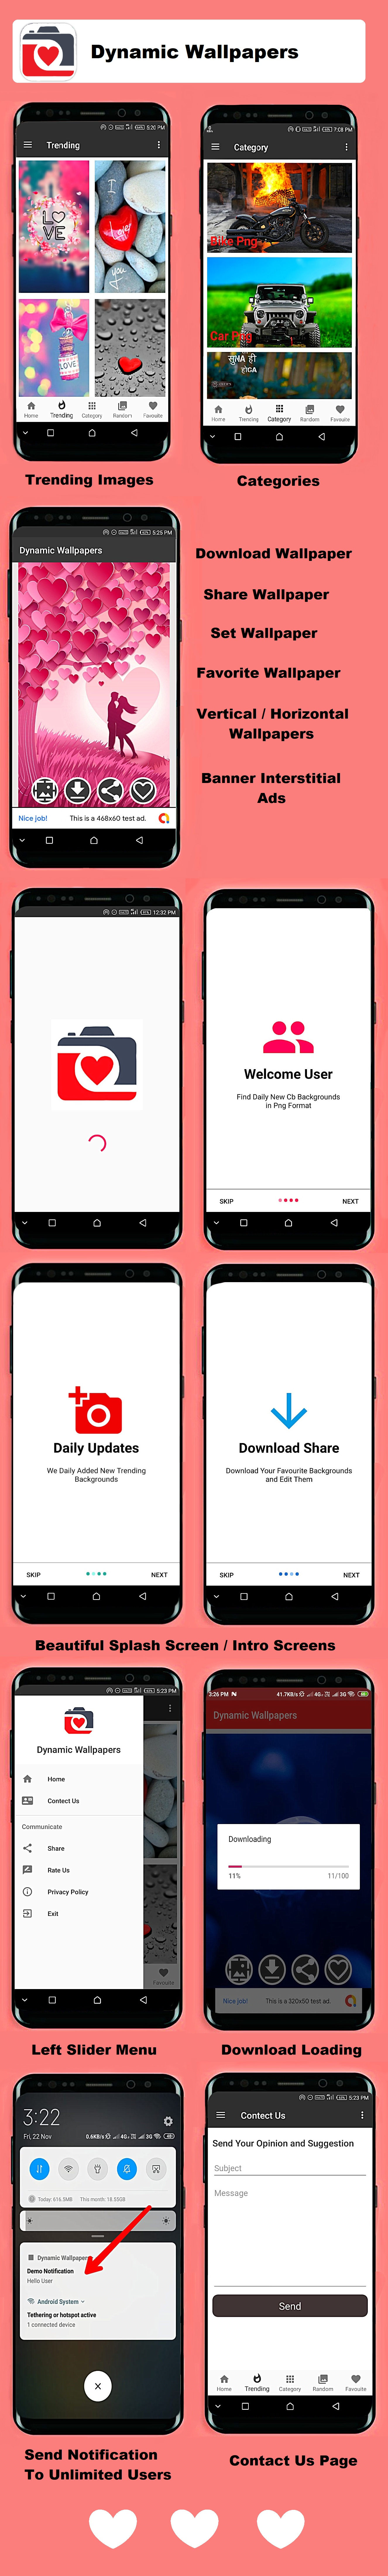 Dynamic Wallpapers Android App With Firebase Back-end - 2